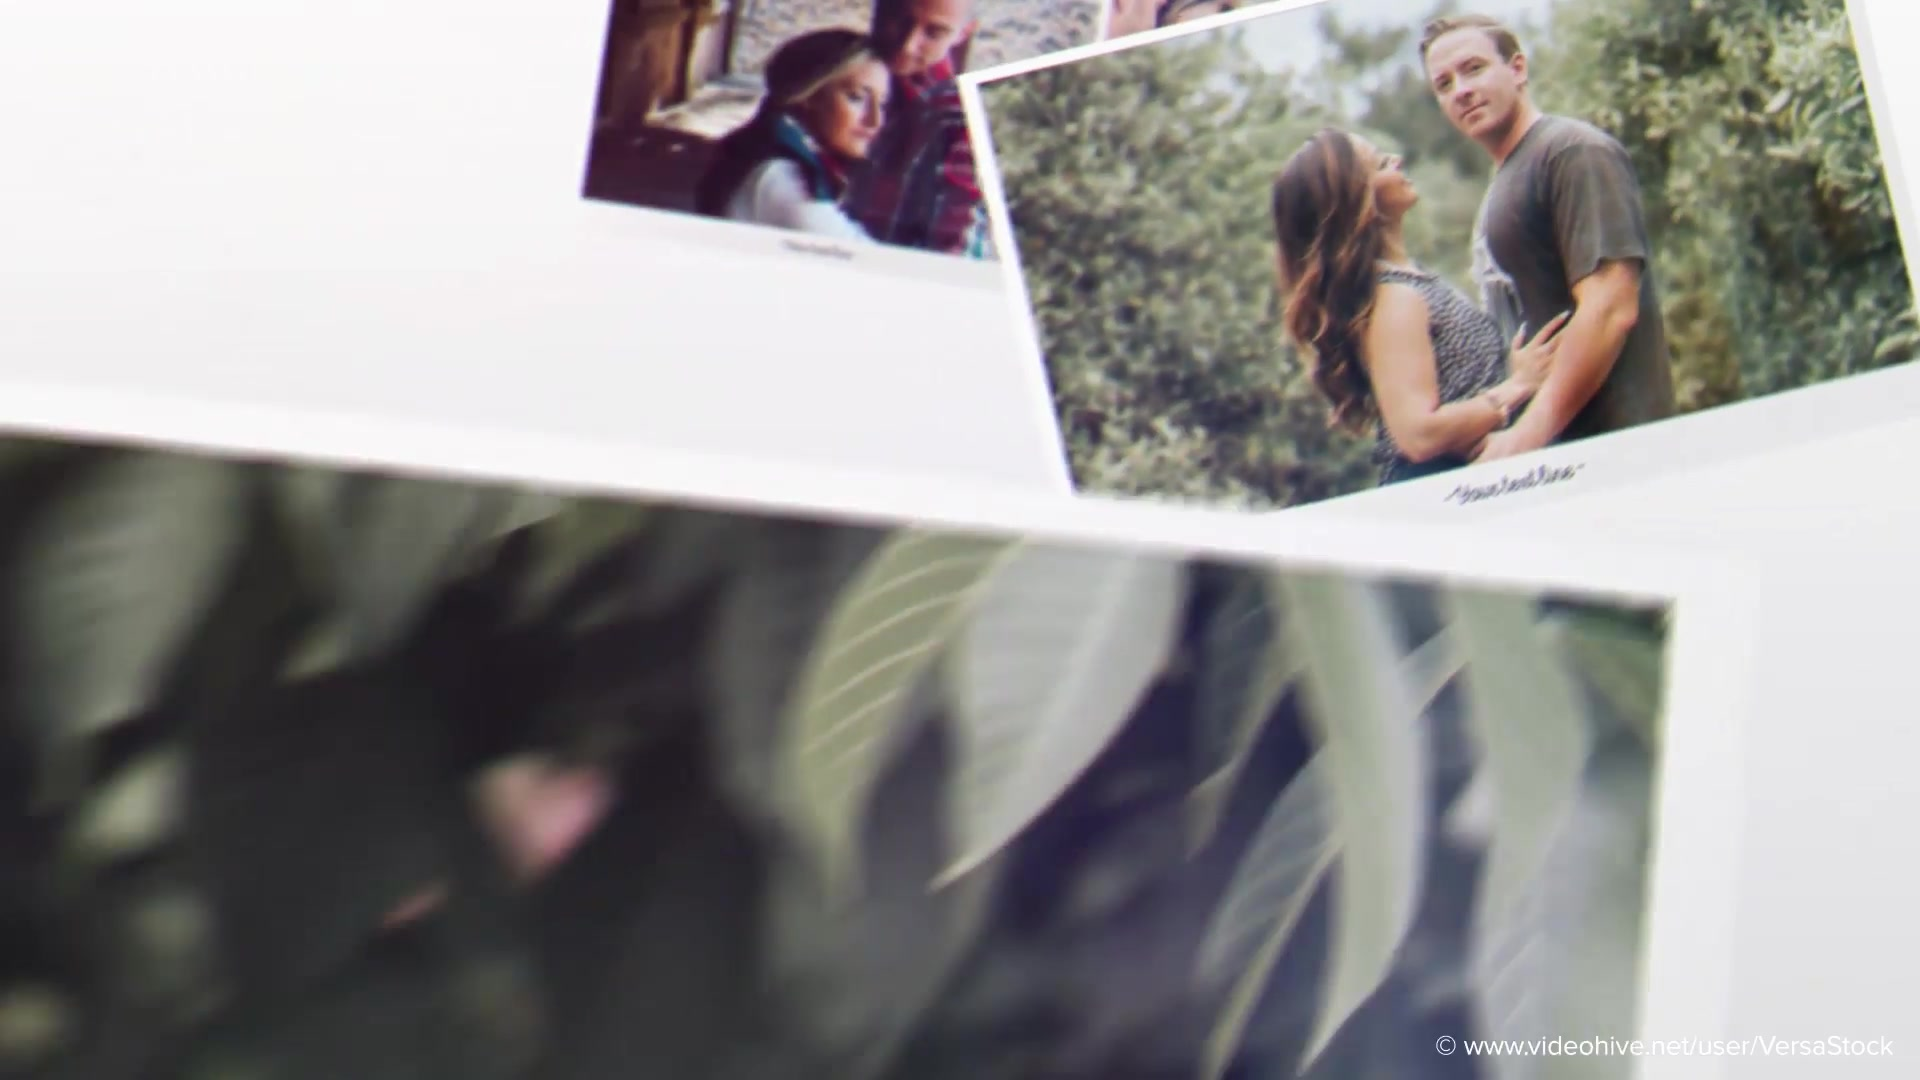 Lovely Slideshow - Download Videohive 21427428